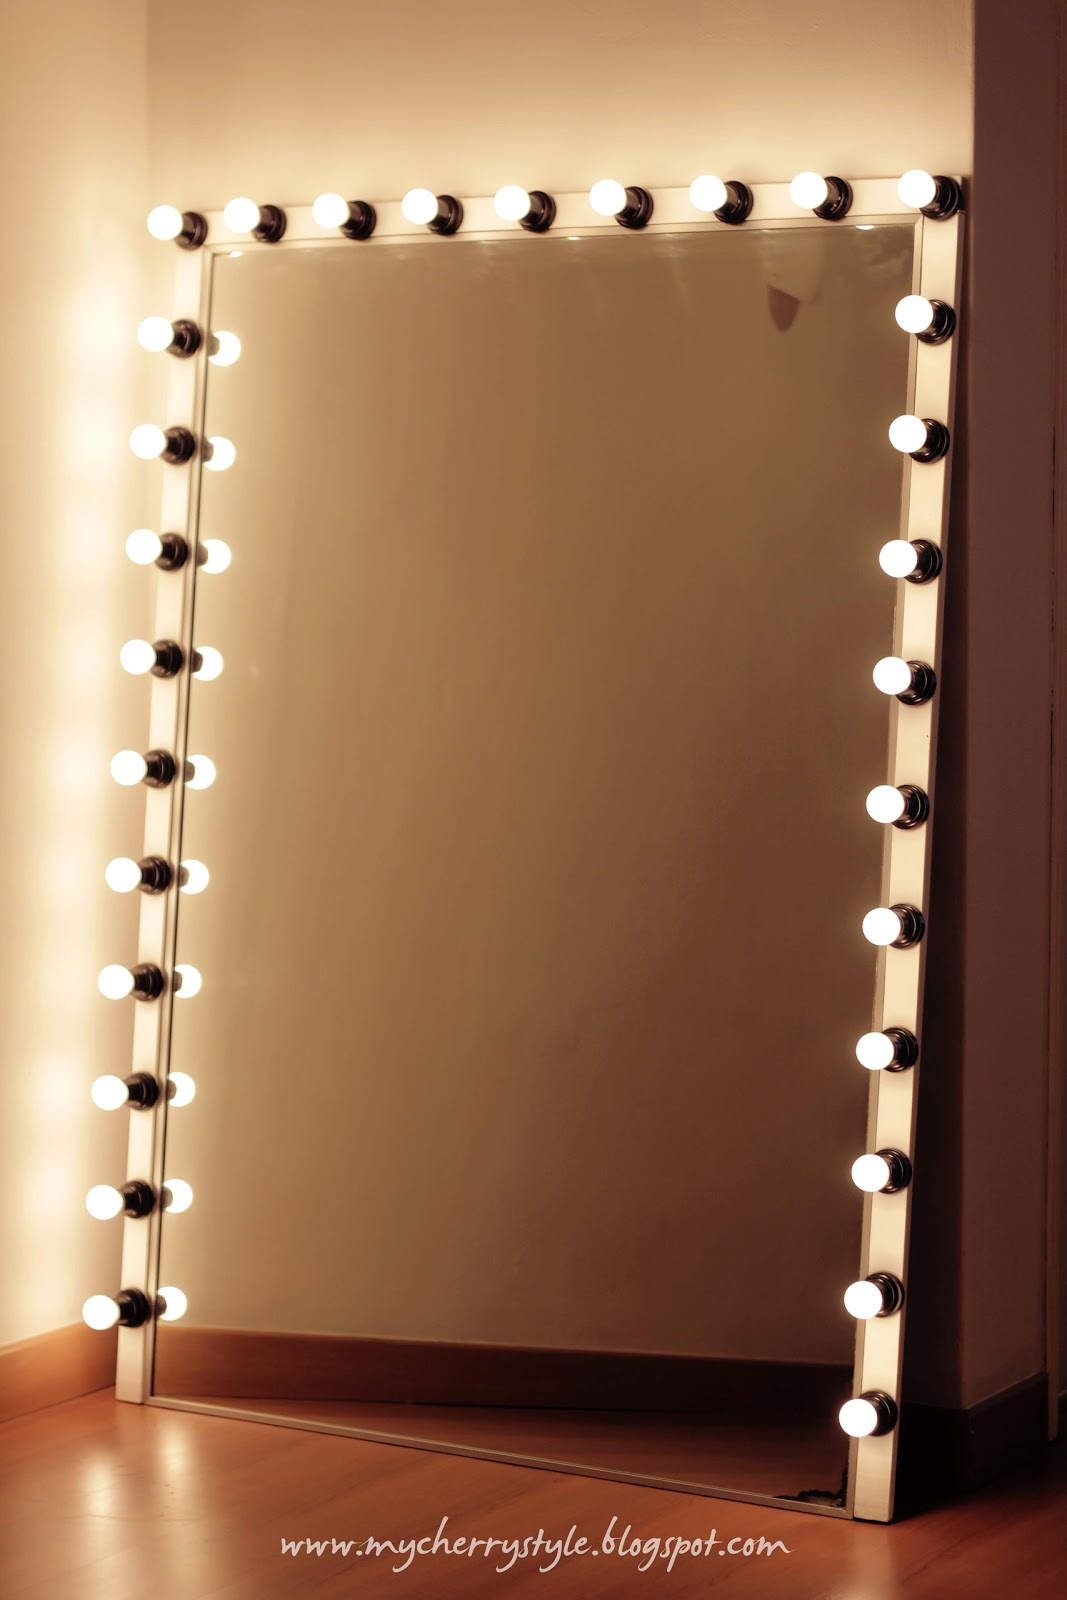 Homemade Vanity Mirror With Lights : DIY Hollywood-style mirror with lights! Tutorial from scratch. for real.